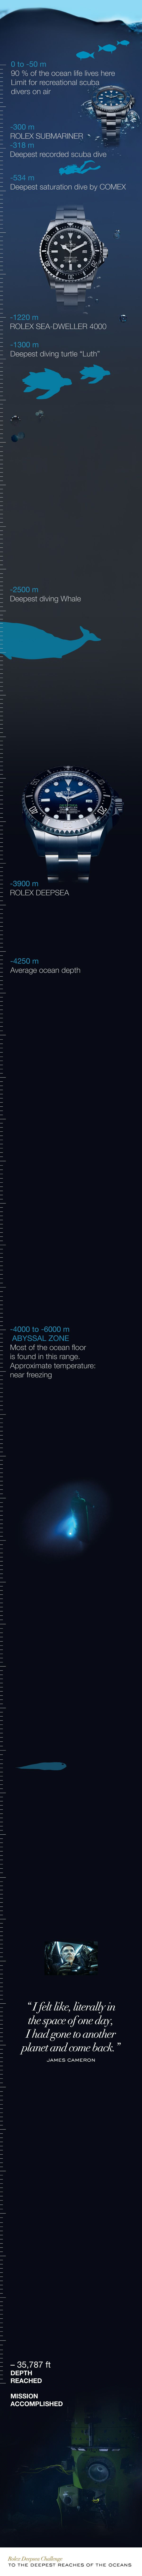 10,908 pixels for 10,908 metres. Discover how the DEEPSEA CHALLENGER submersible, piloted by  film-maker and explorer James Cameron, descended 10,908 metres (35,787 feet) to the deepest point in the world's oceans carrying an experimental divers' watch, the Rolex Deepsea Challenge, on its robotic manipulator arm. #Exploration #Deepsea #RolexOfficial